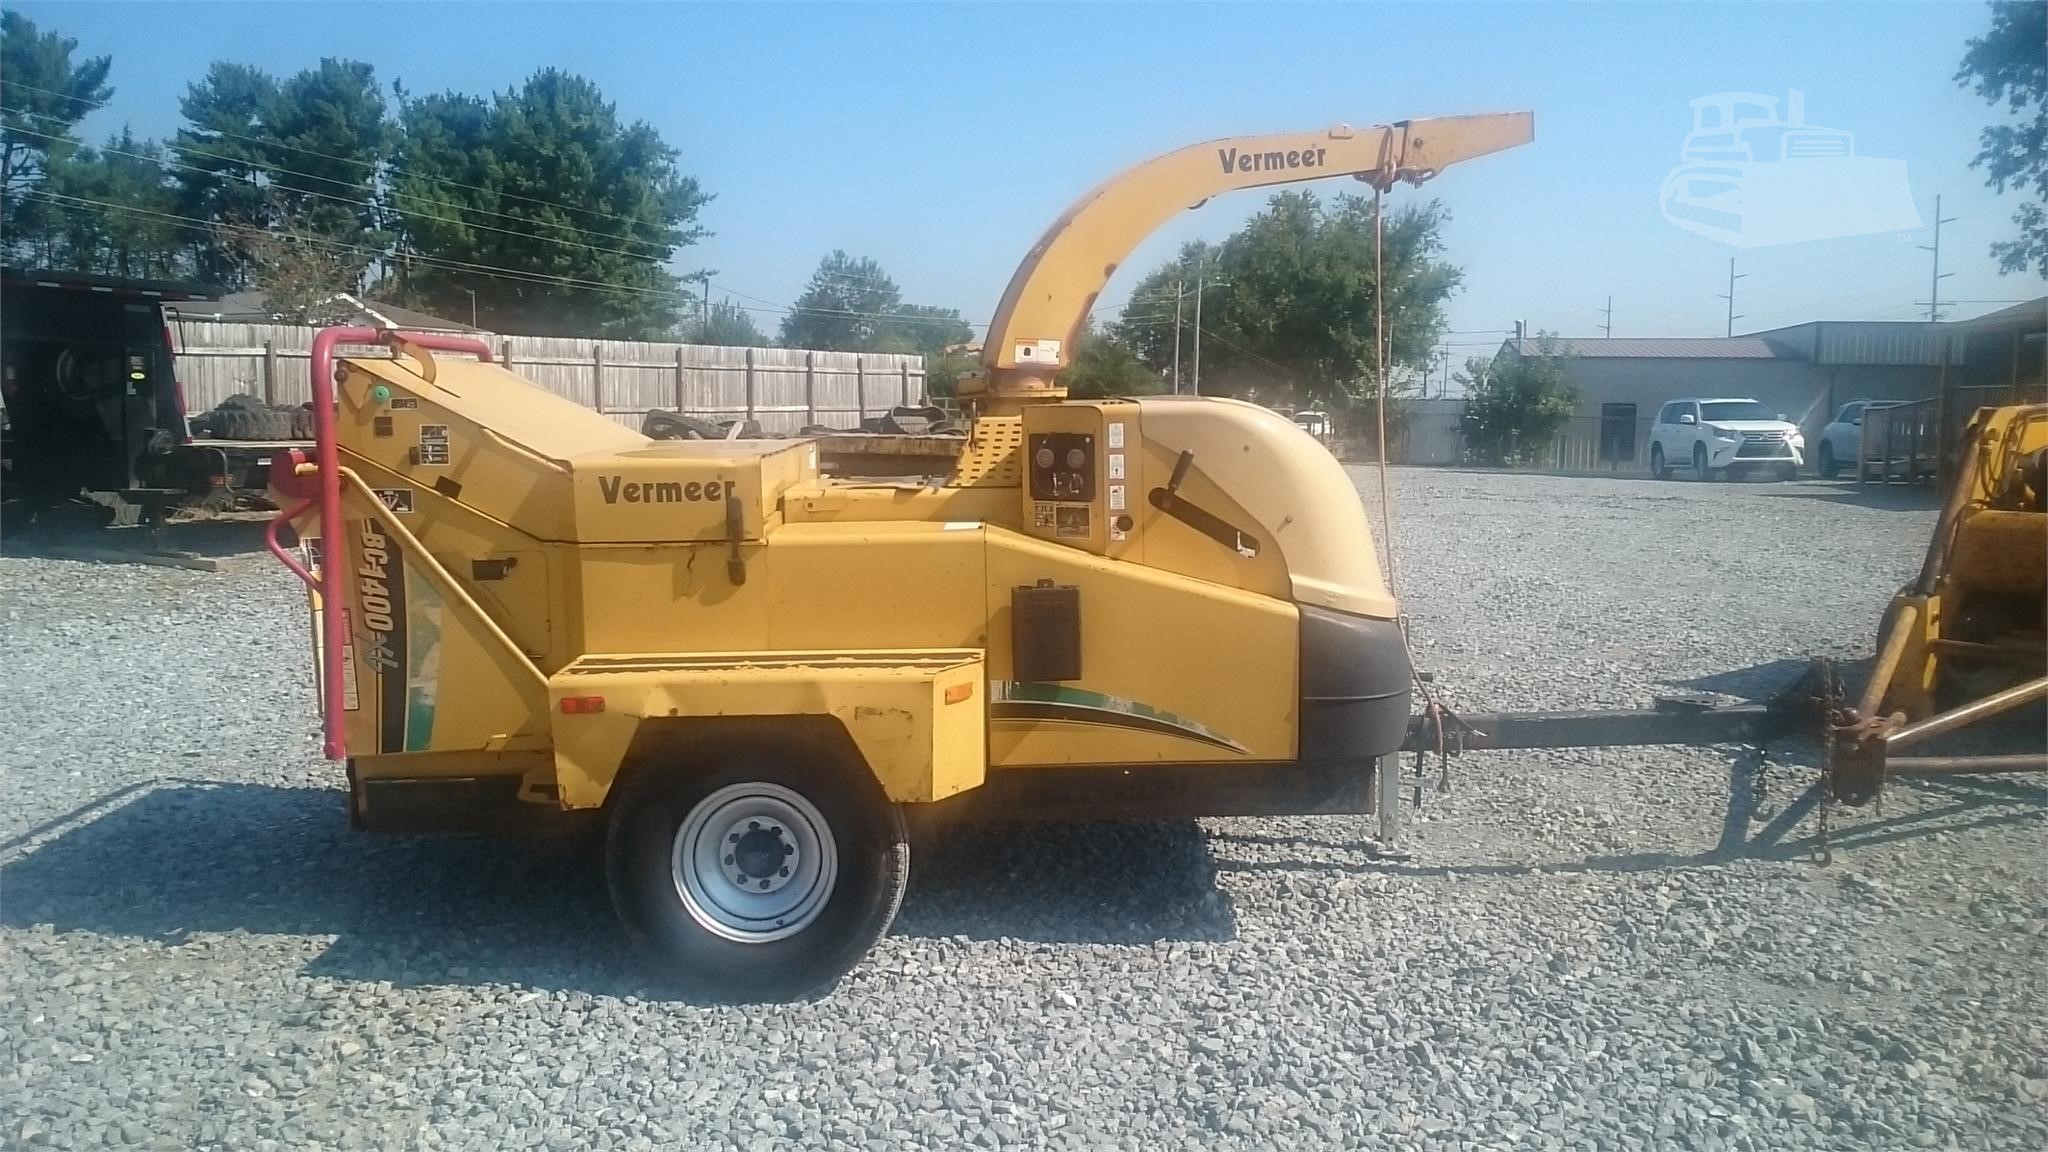 2006 VERMEER BC1400XL 14 WOOD CHIPPER PULL BEHIND CAT 122HP DIESEL ENGINE VERY NICE READY FOR